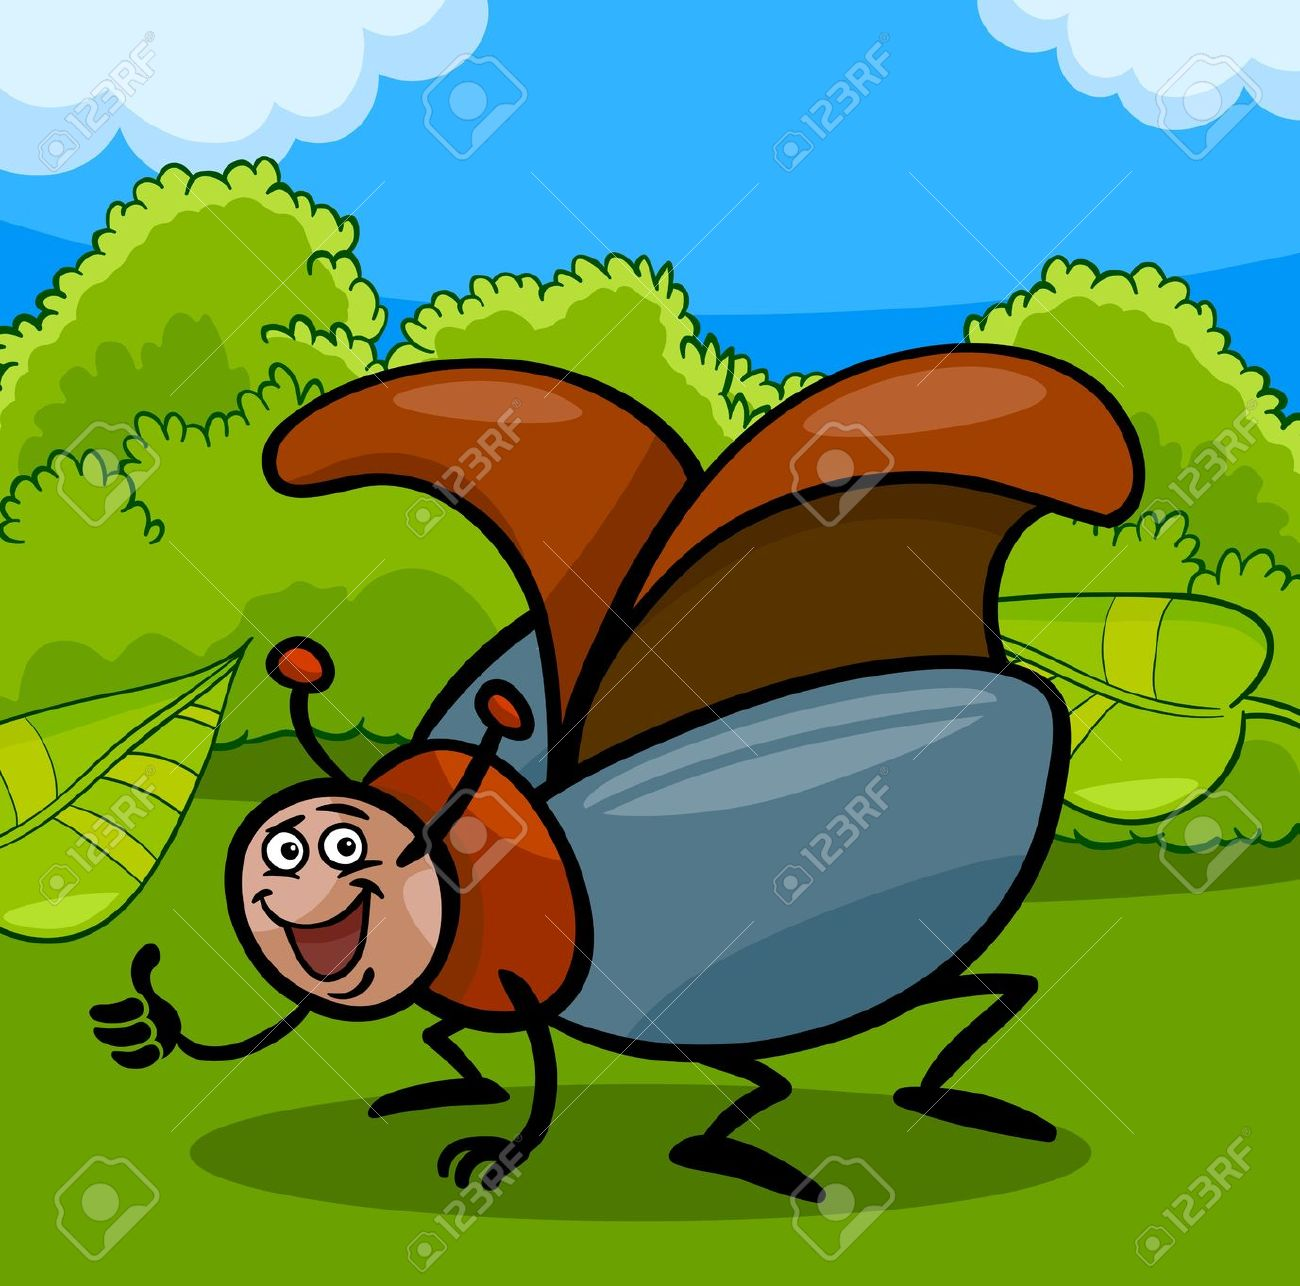 Cartoon Illustration Of Funny Beetle Or Cockchafer Insect On.